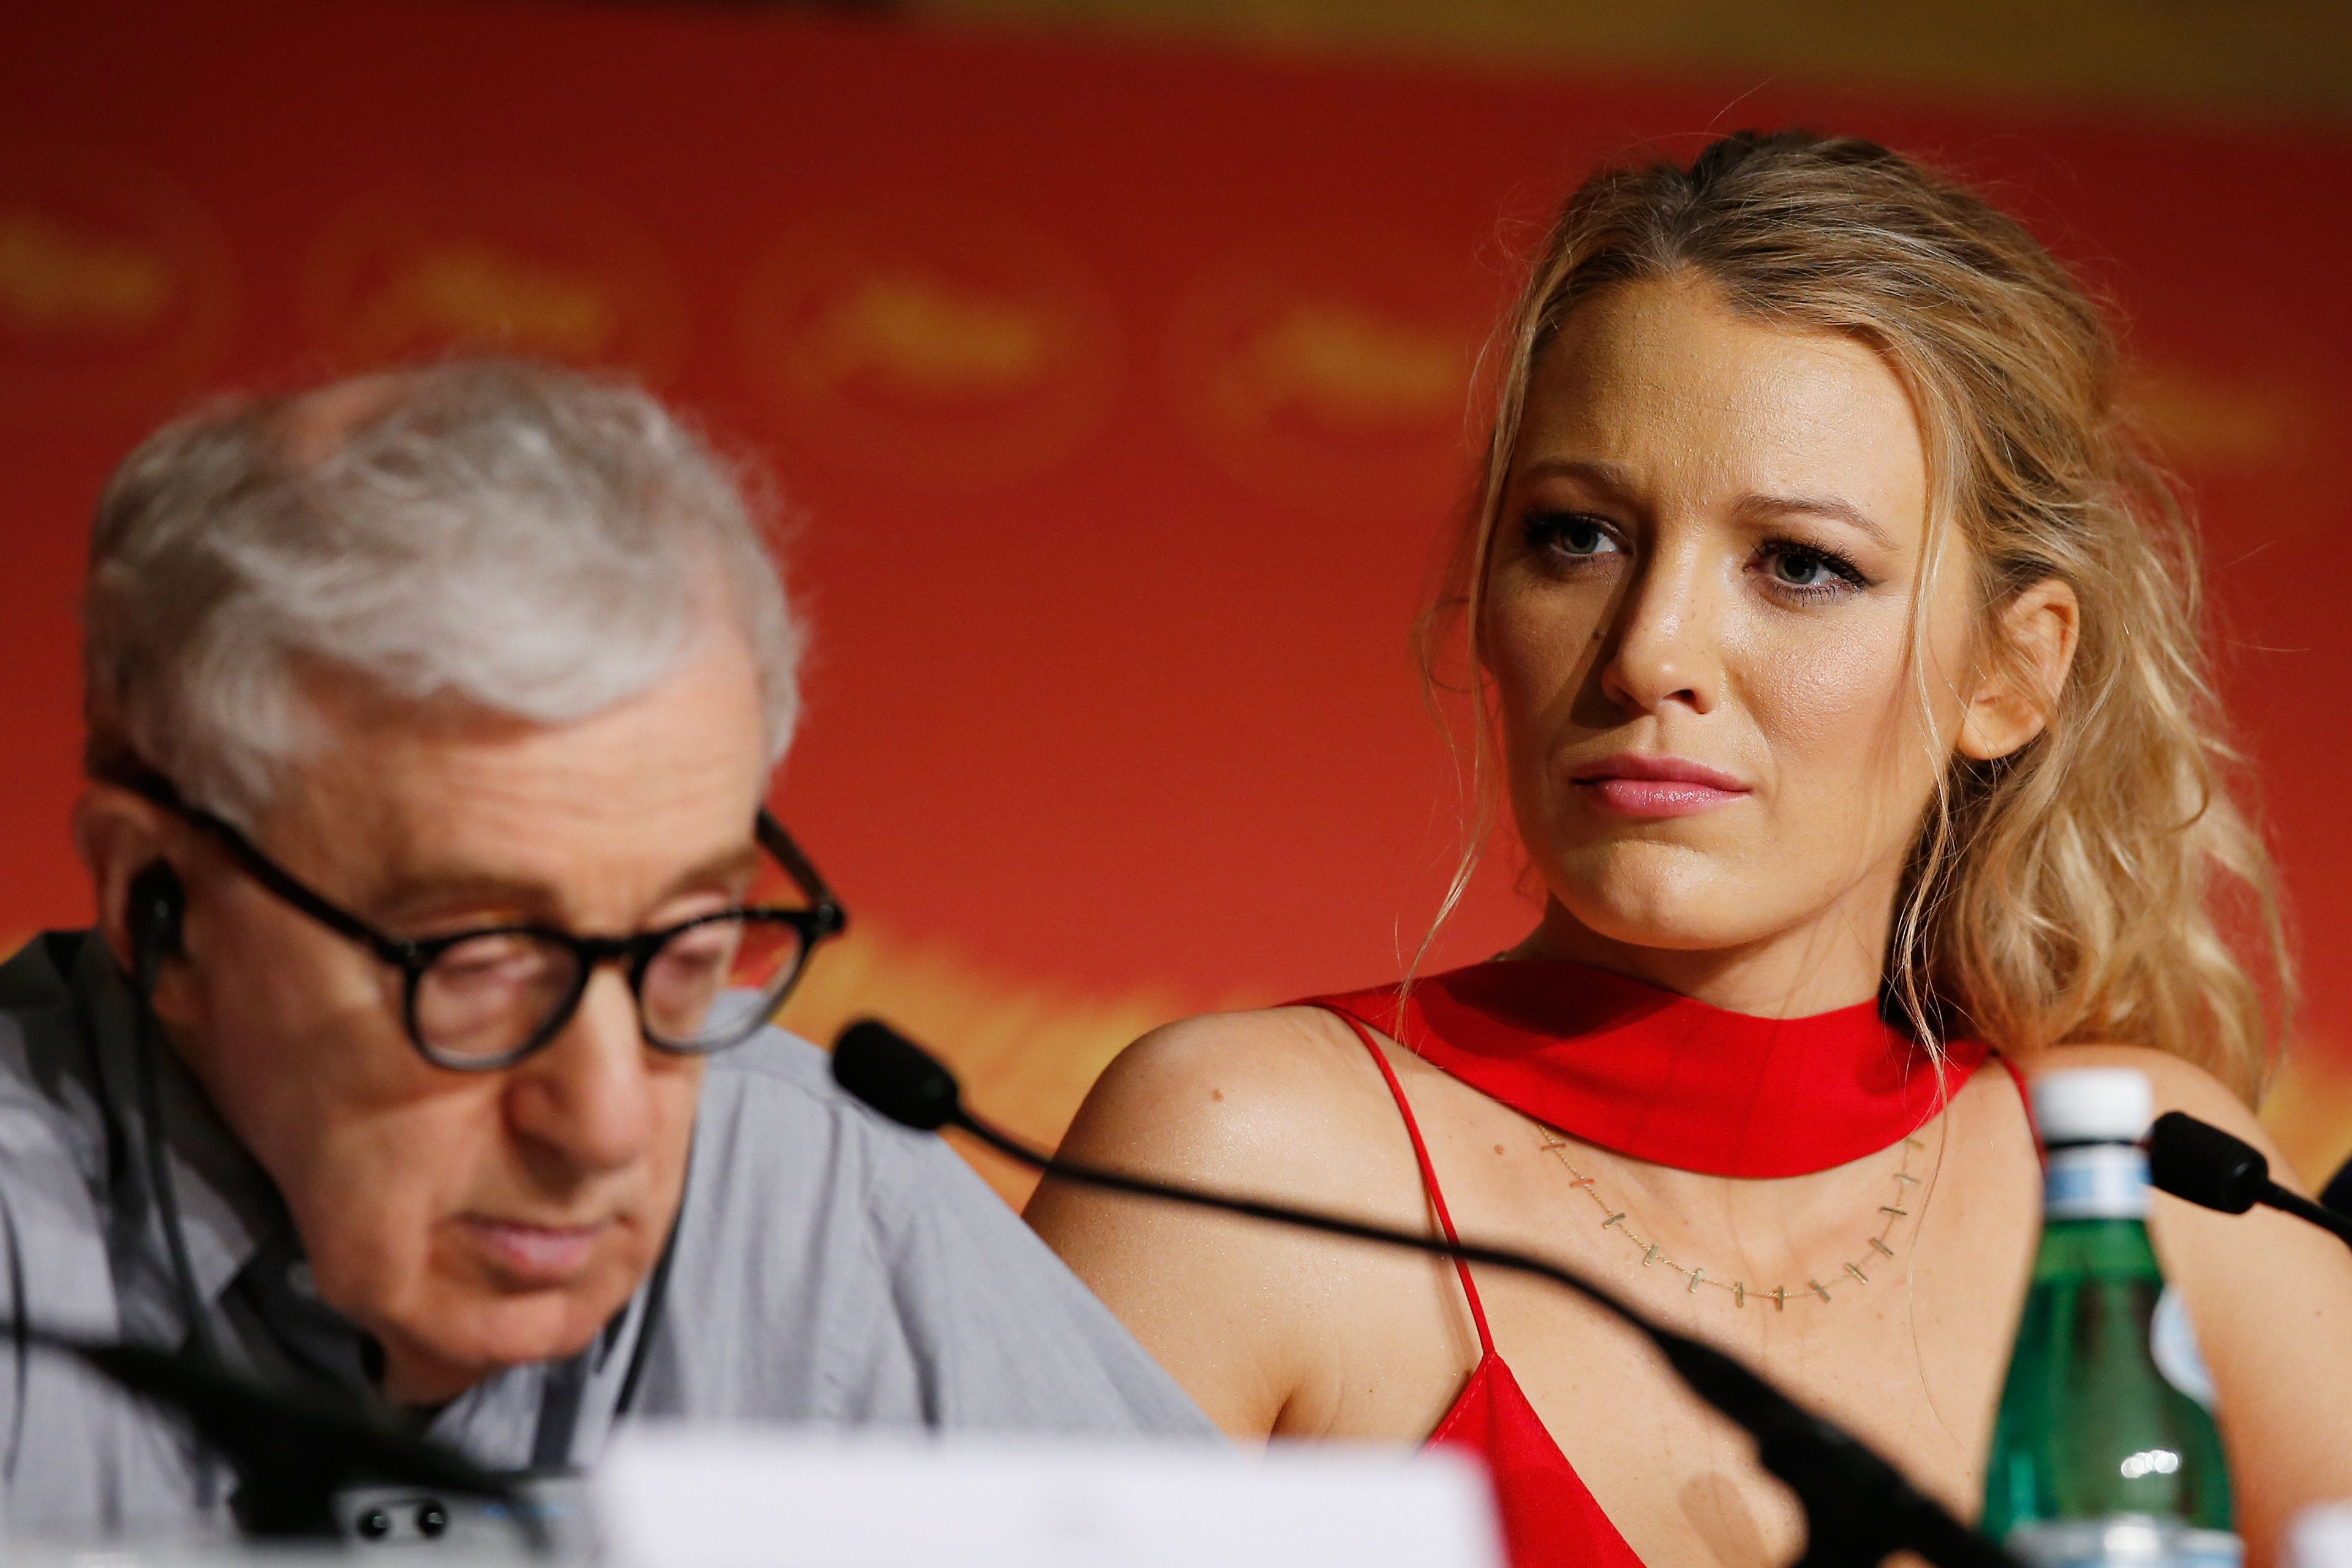 CANNES, FRANCE - MAY 11:  Woody Allen (L) and Blake Lively attend the 'Cafe Society' Press Conference during The 69th Annual Cannes Film Festival on May 11, 2016 in Cannes, France.  (Photo by Pool/Getty Images)